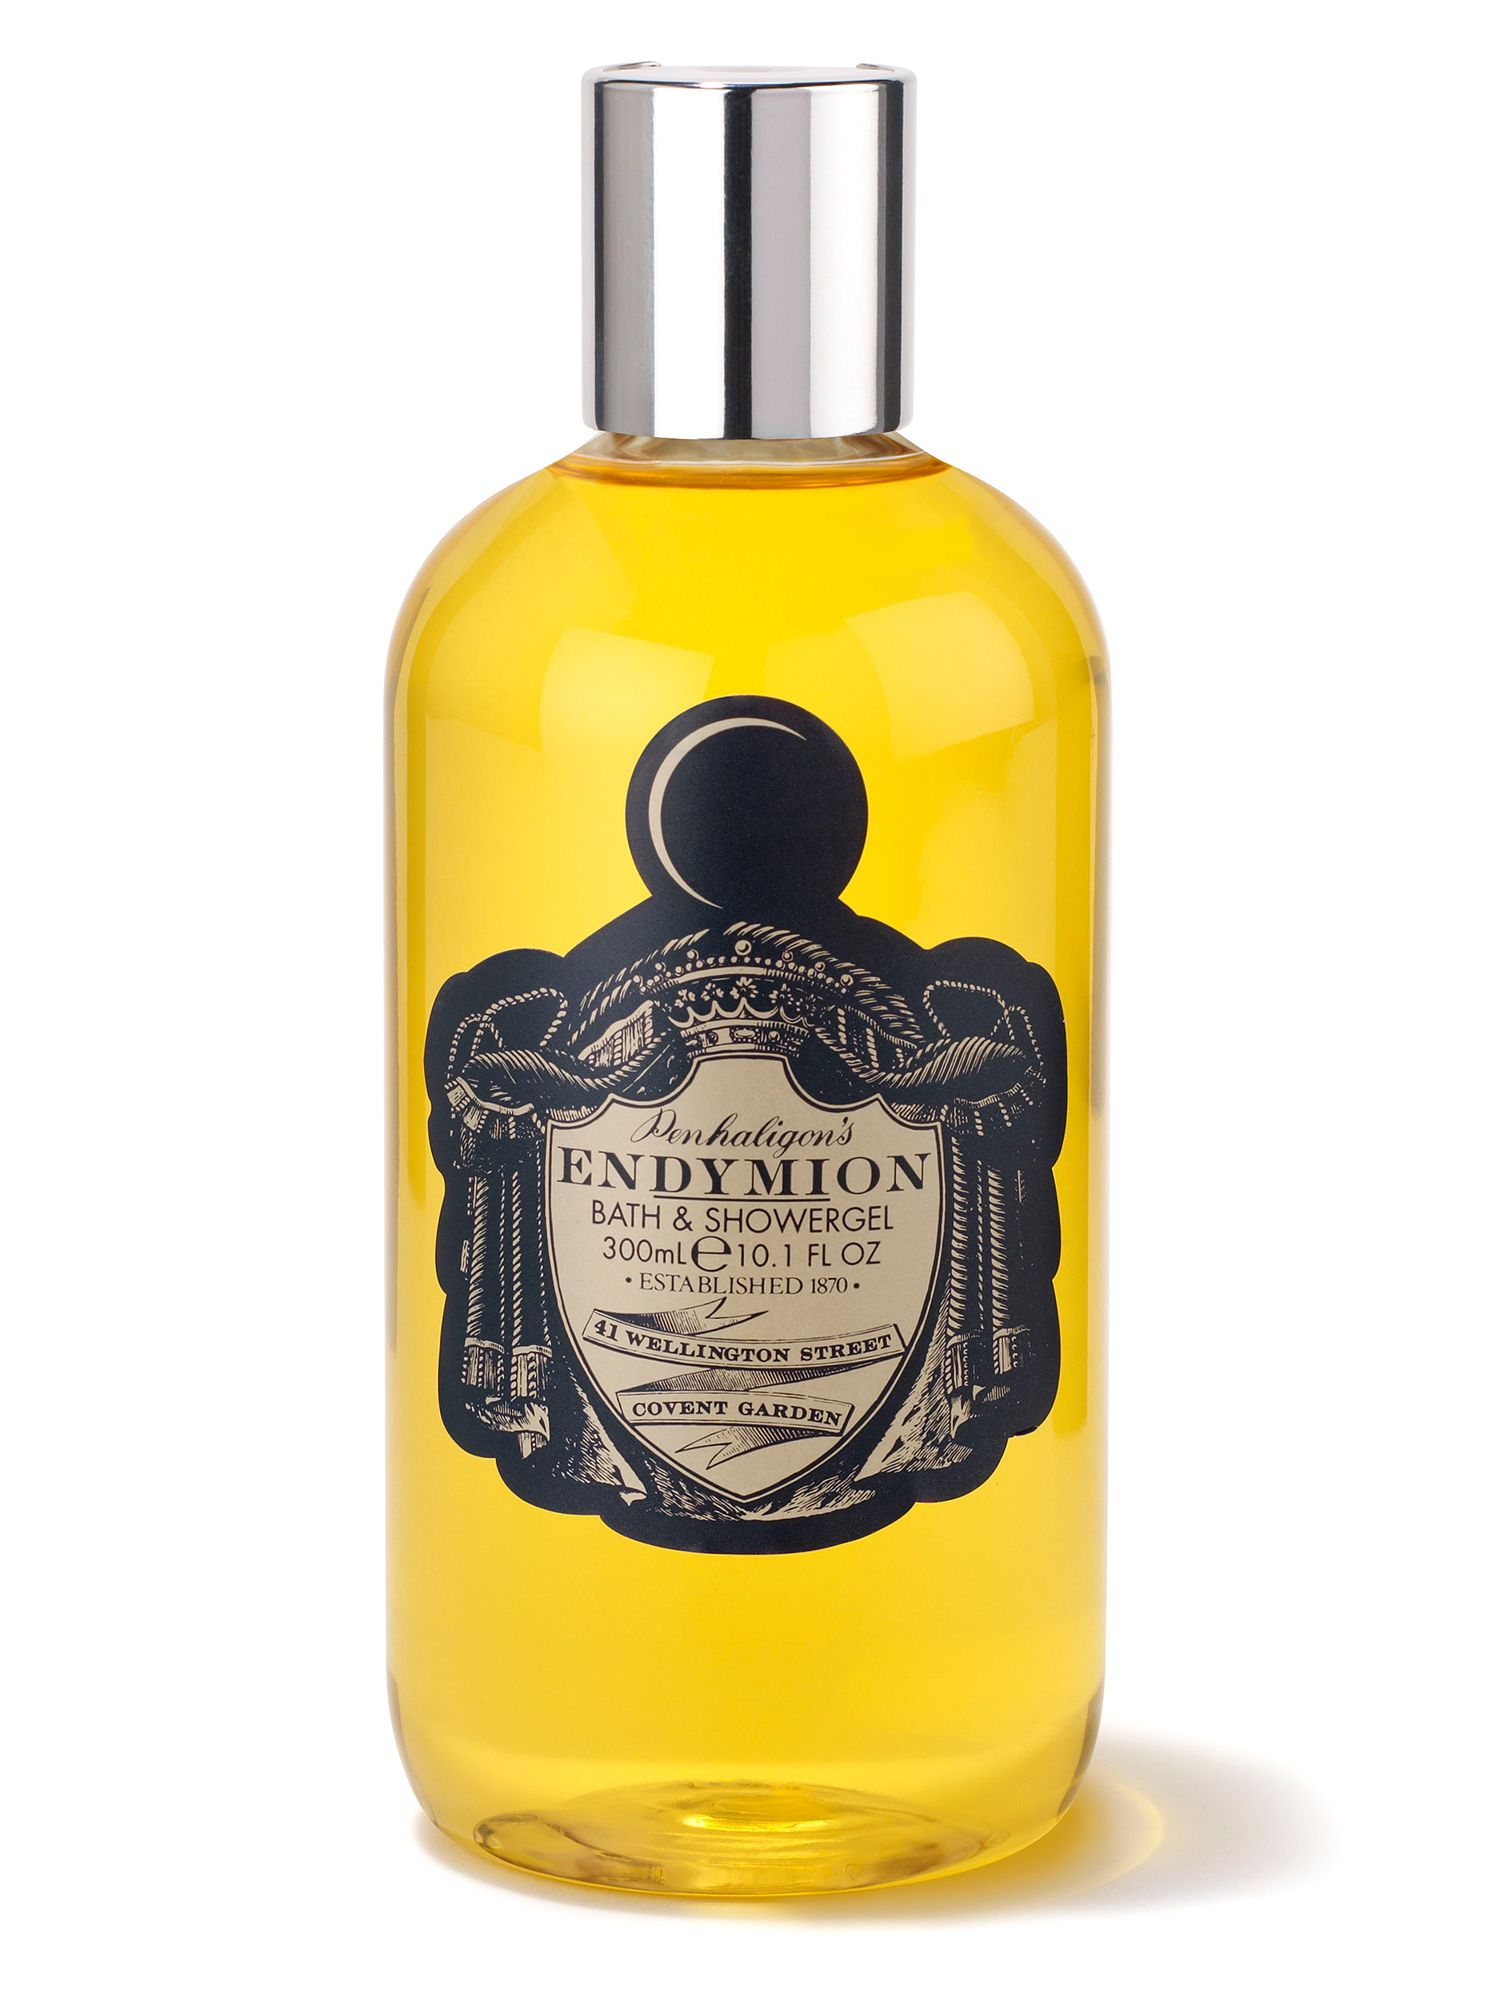 Endymion Bath & Shower Gel 300ml